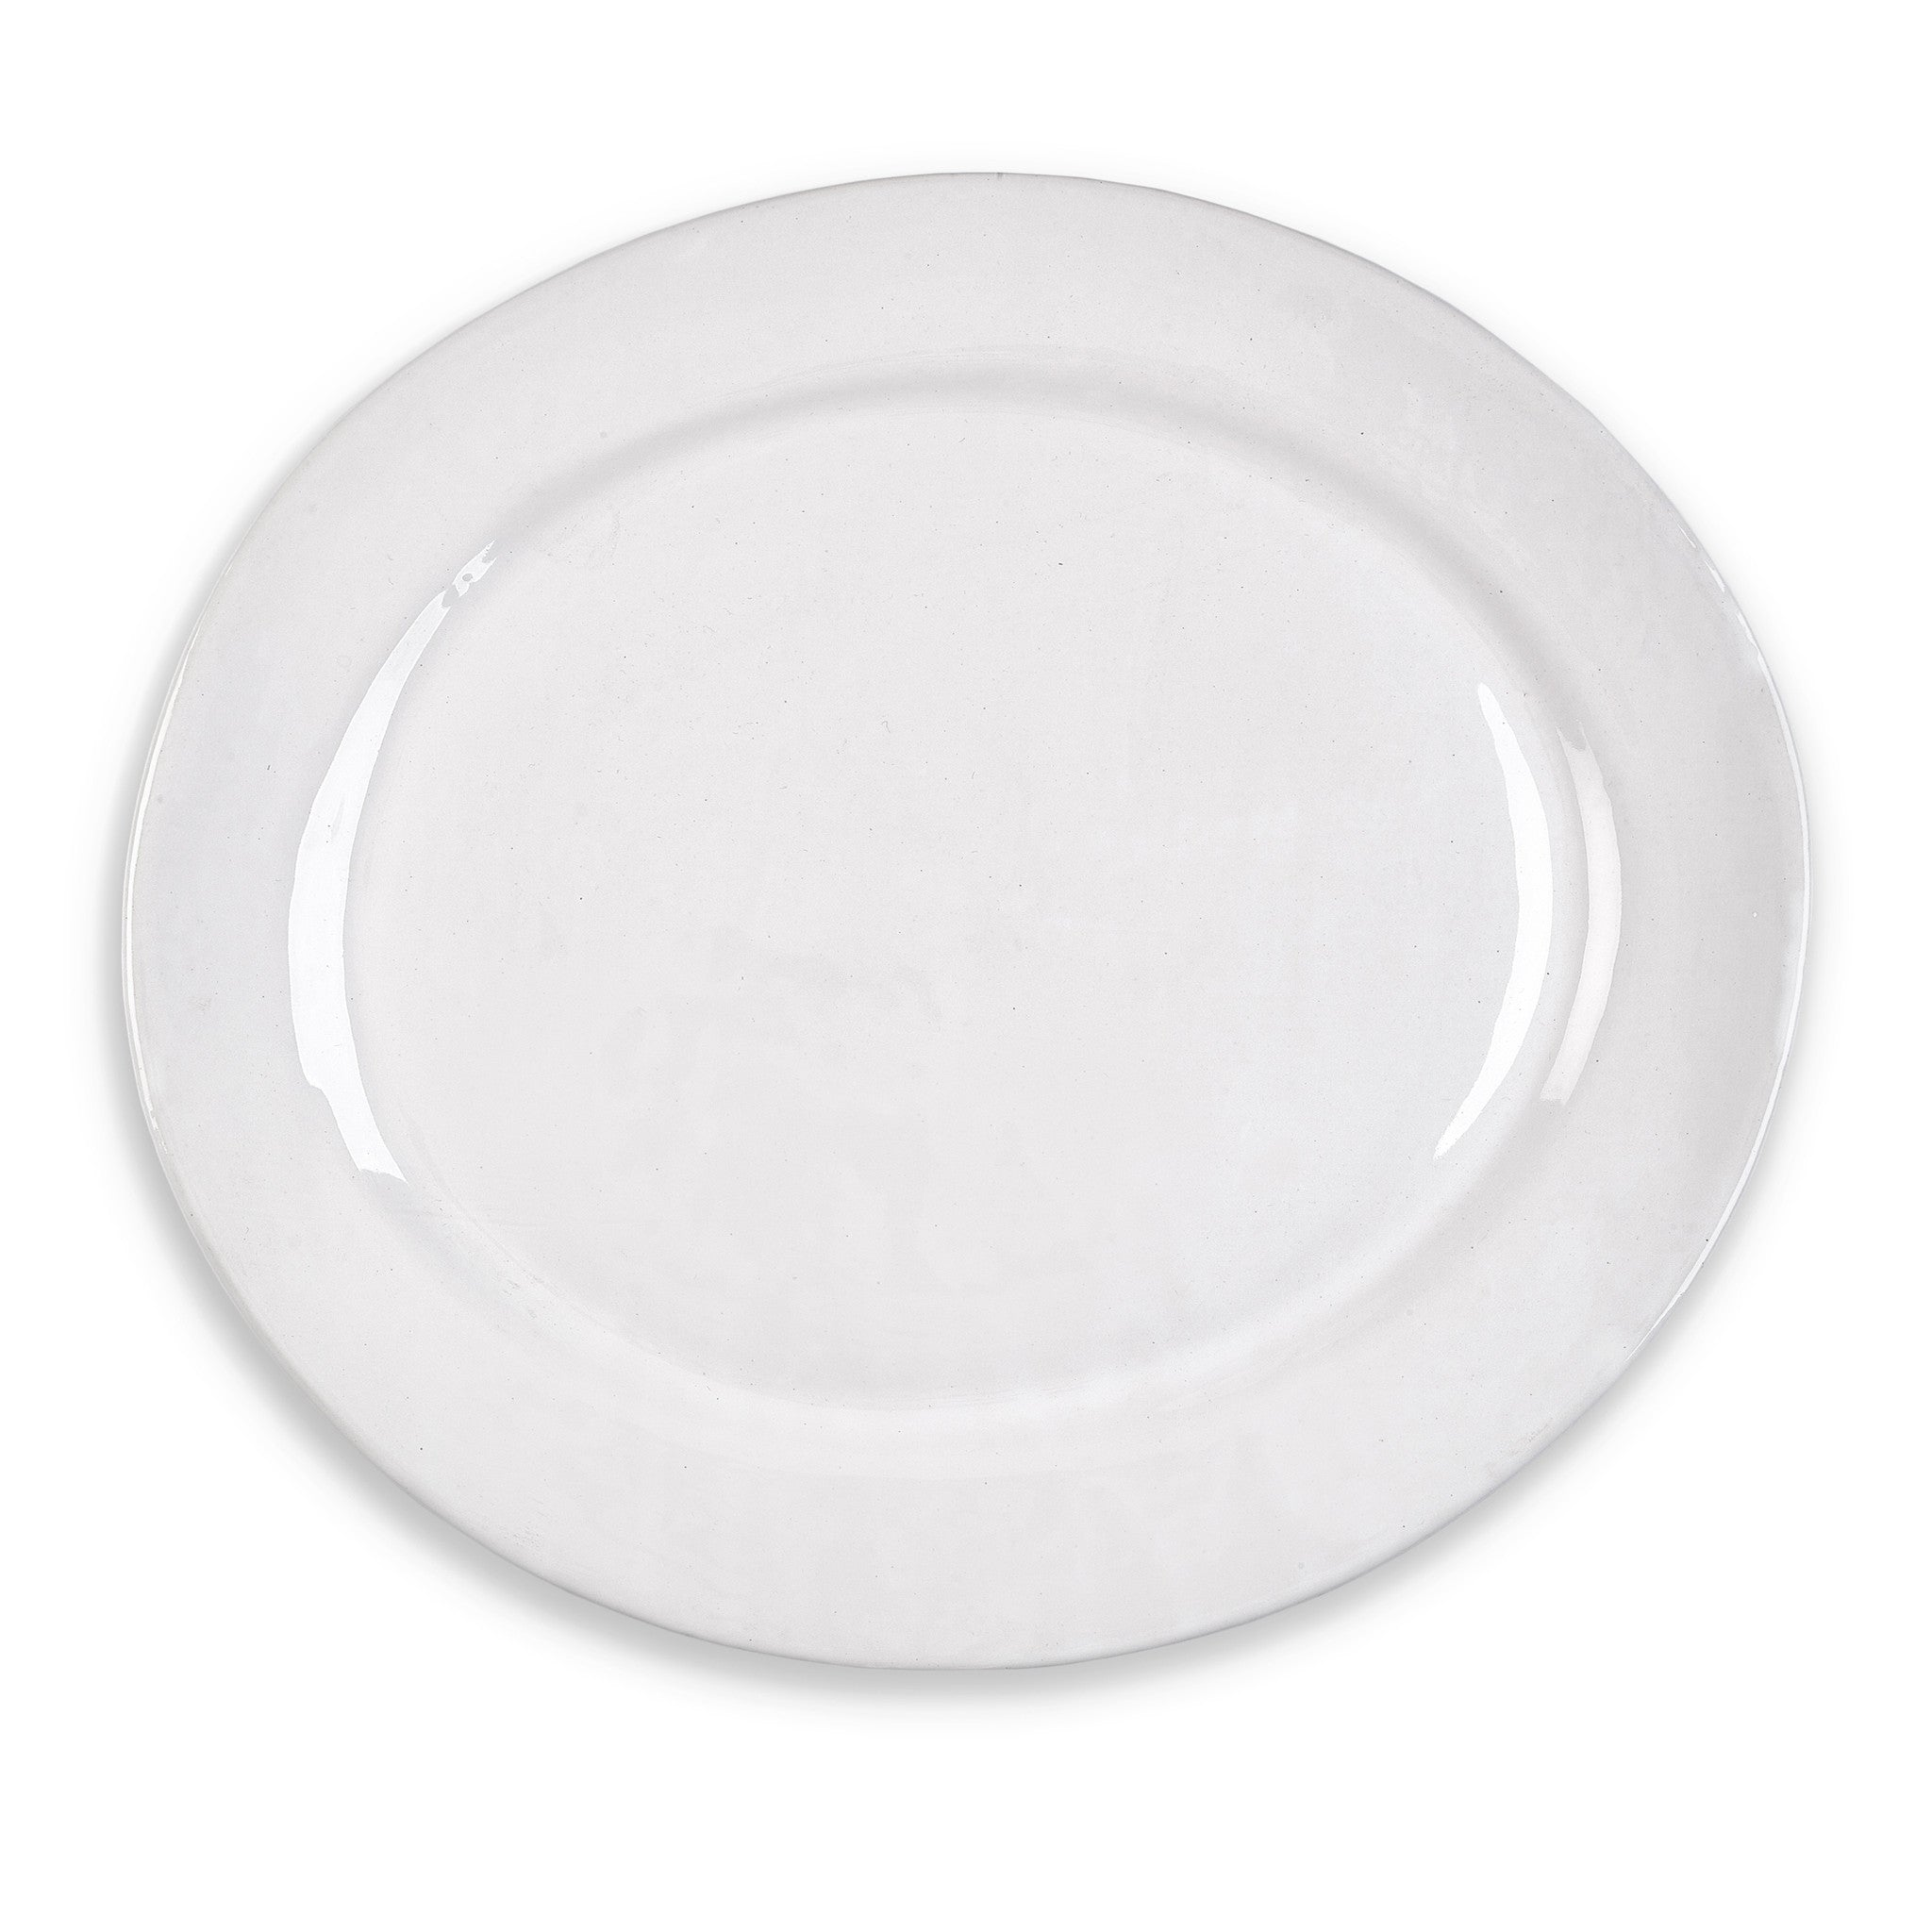 Wonki Ware Extra Large Oval Platter in White, 50cm